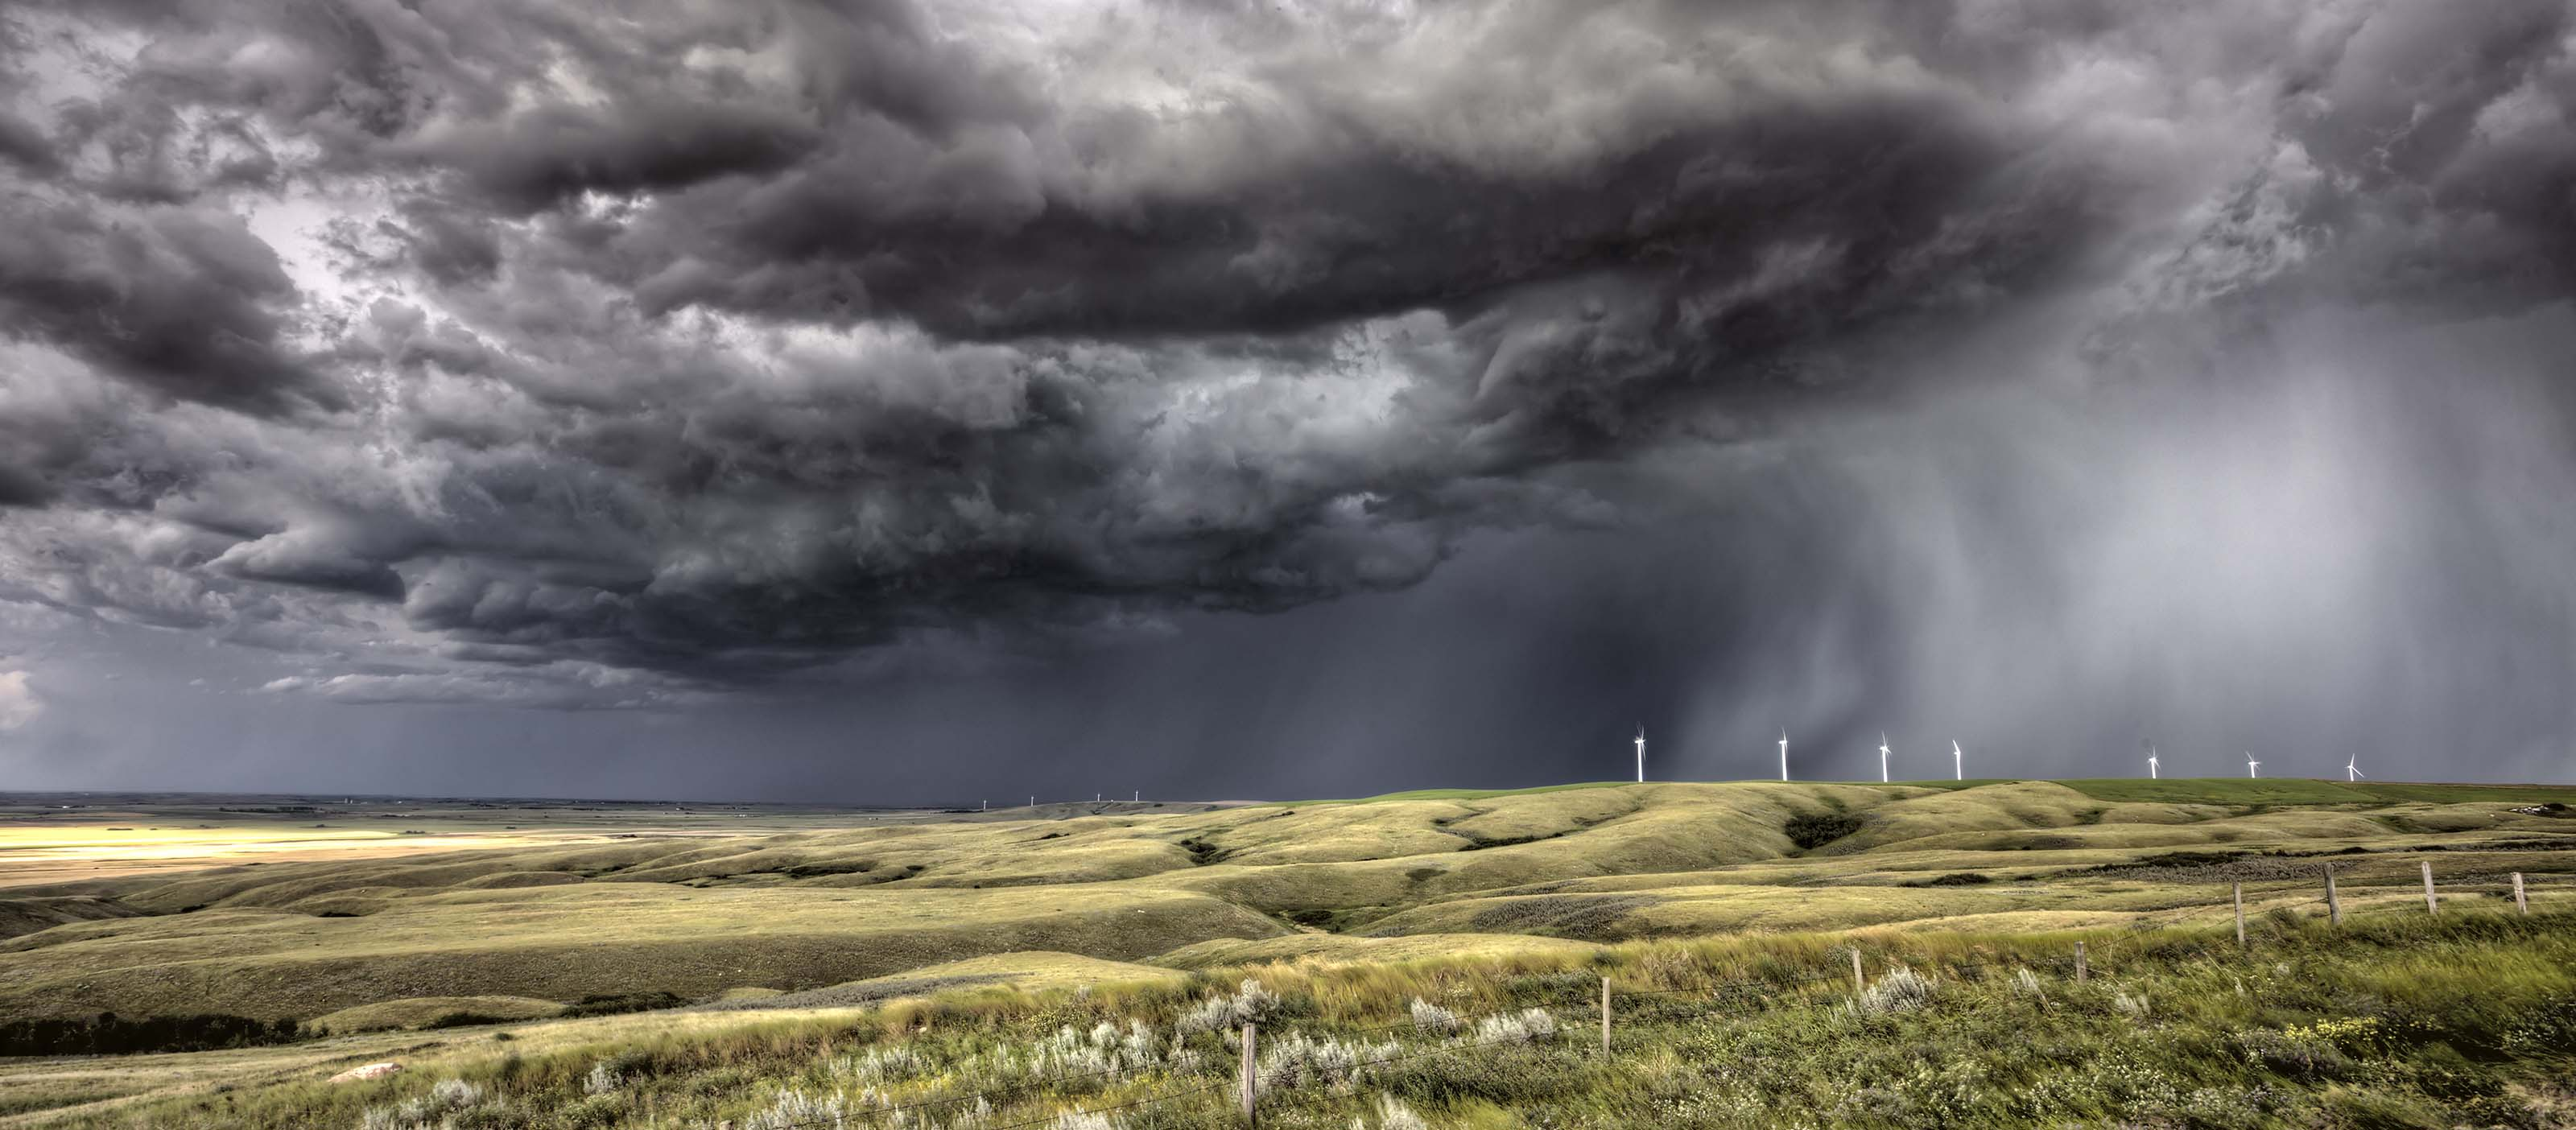 Helping utilities in extreme weather | GE